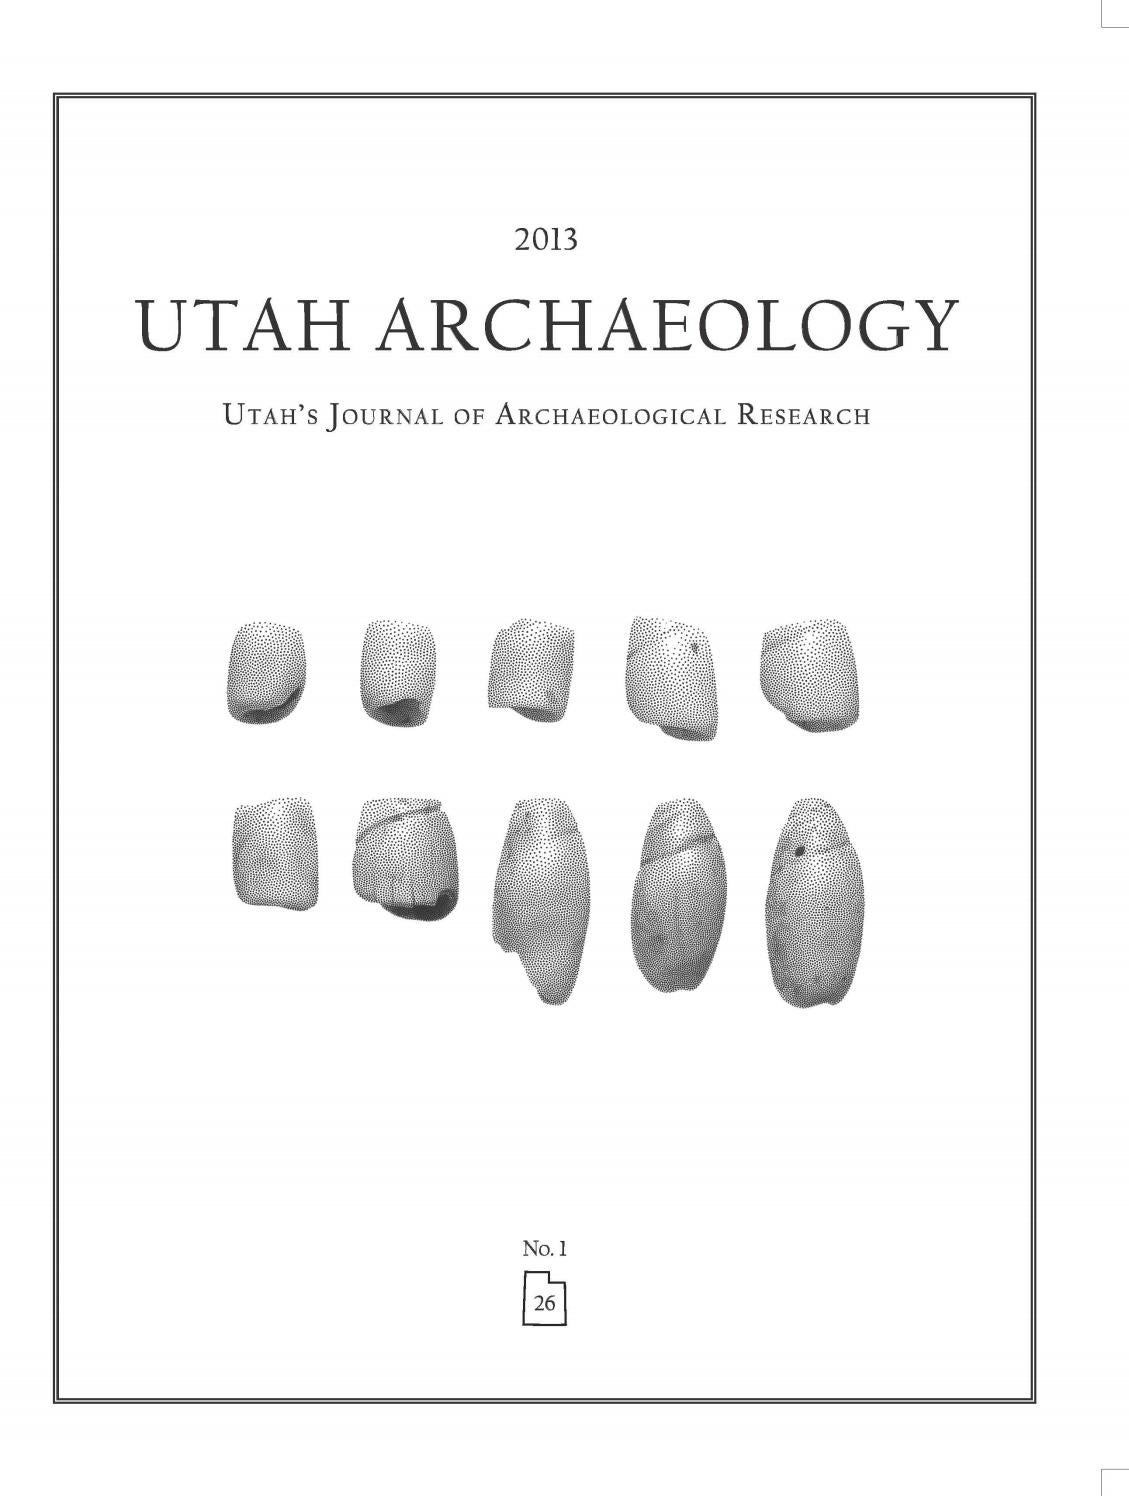 Utah Archaeology Volume 26, Number 1, 2013 by Utah State